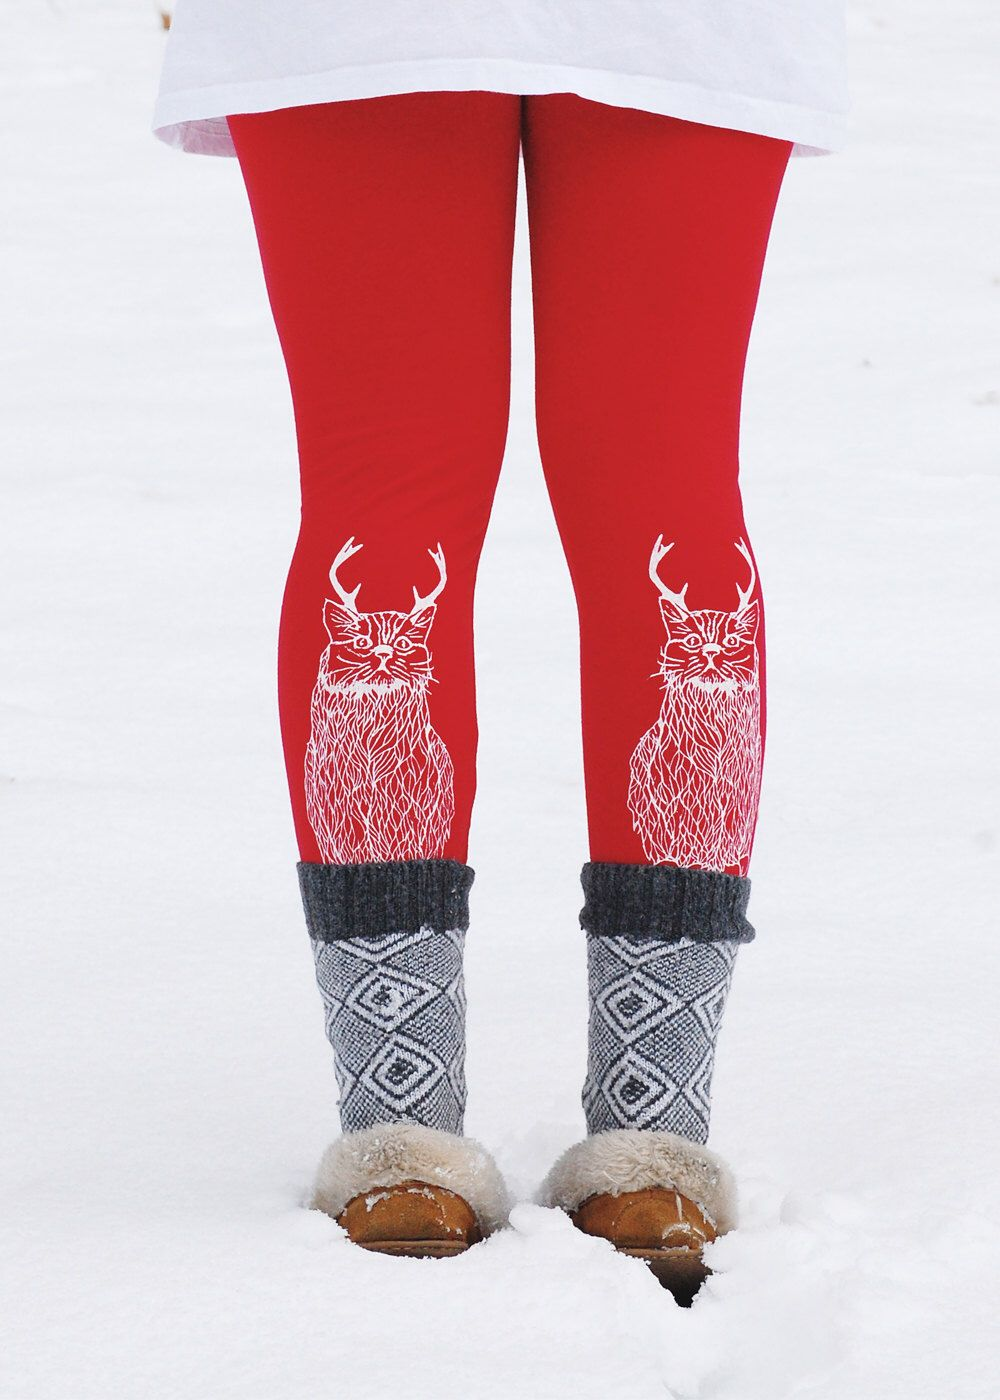 LIMITED EDITION RED Wild Catalope Leggings - ugly Christmas Leggings -  Jersey Spandex High Waist Cat